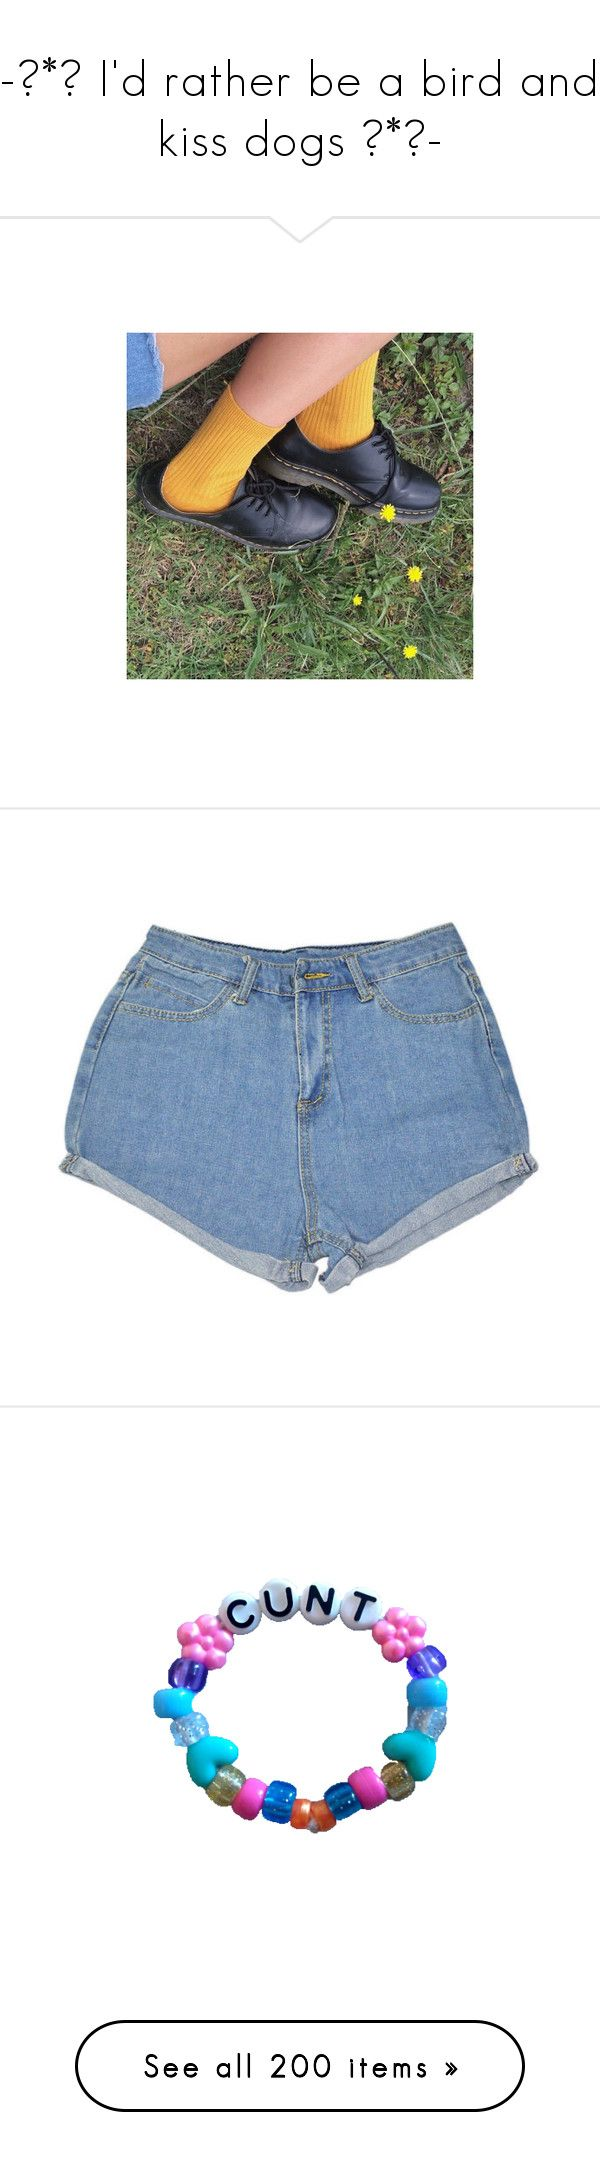 """""""-💕*🌺 I'd rather be a bird and kiss dogs 🌺*💕-"""" by queenofrocknroll ❤ liked on Polyvore featuring pictures, shorts, bottoms, pants, short, light blue shorts, blue shorts, short shorts, blue short shorts and jewelry"""